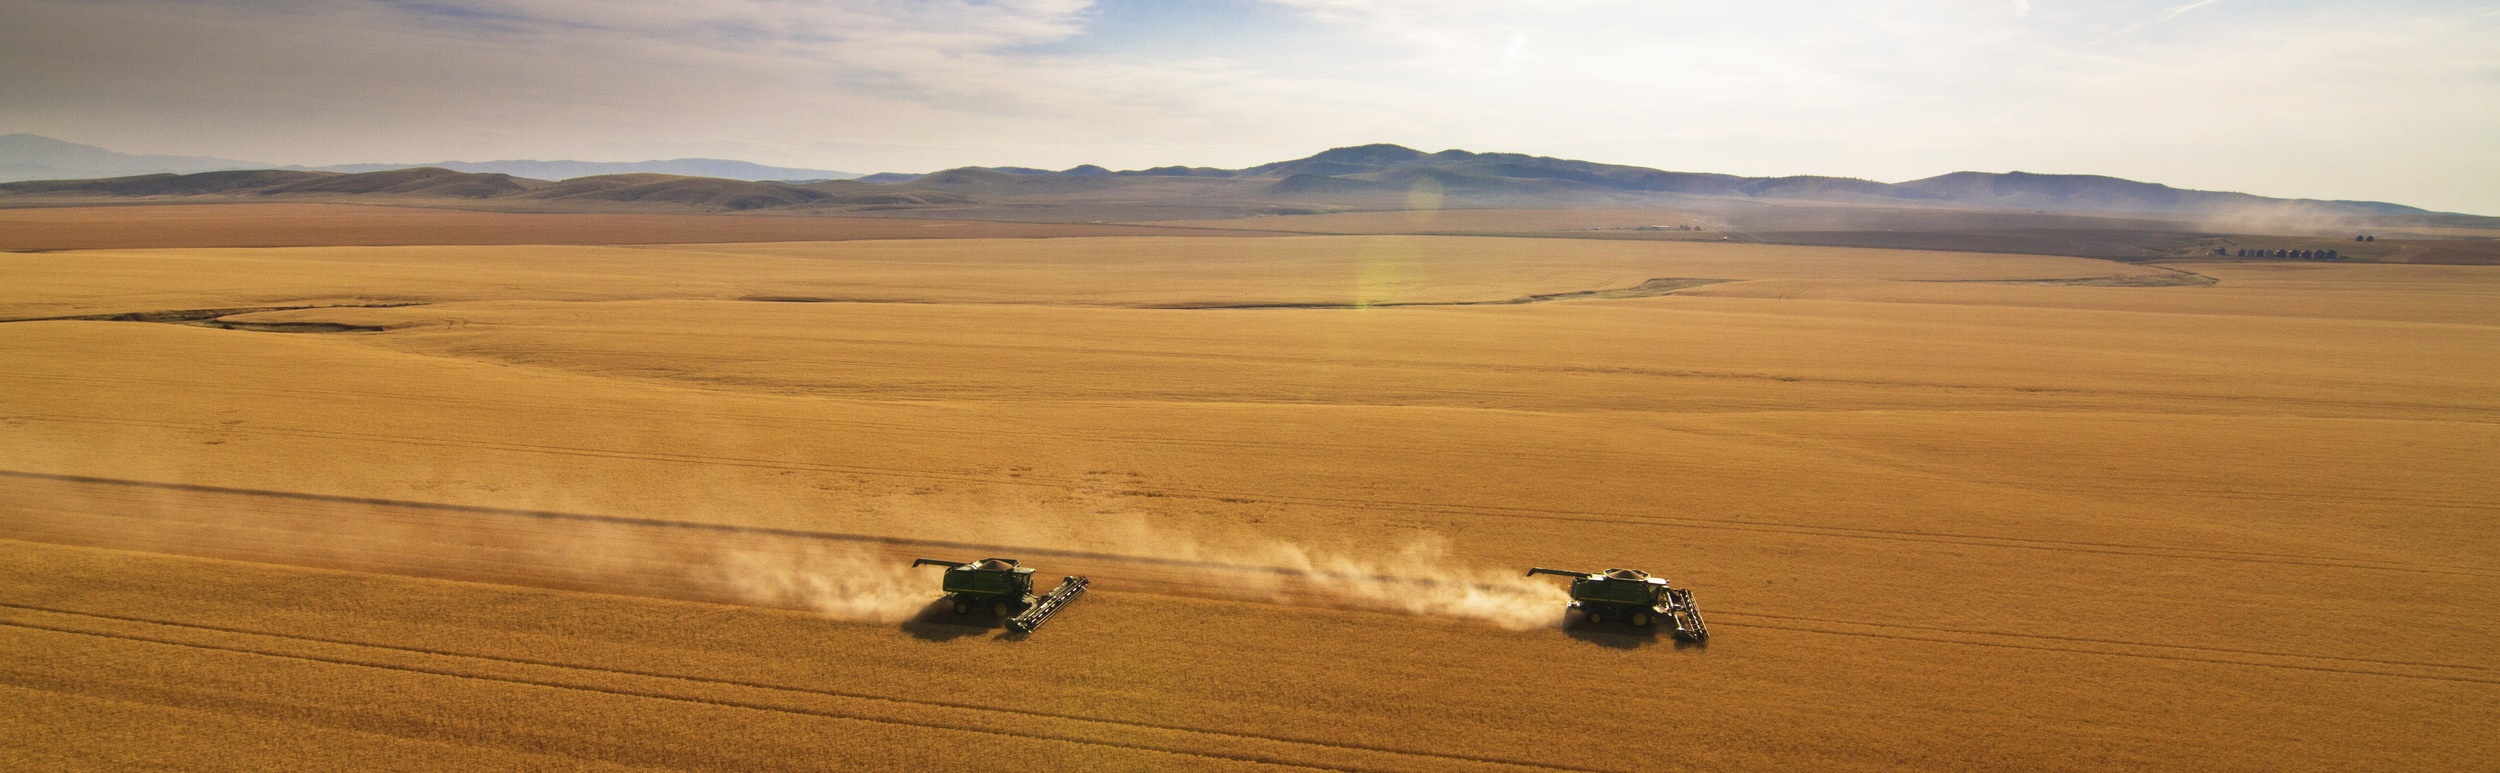 Harvesting Wheat fileds PANO clipped.jpg